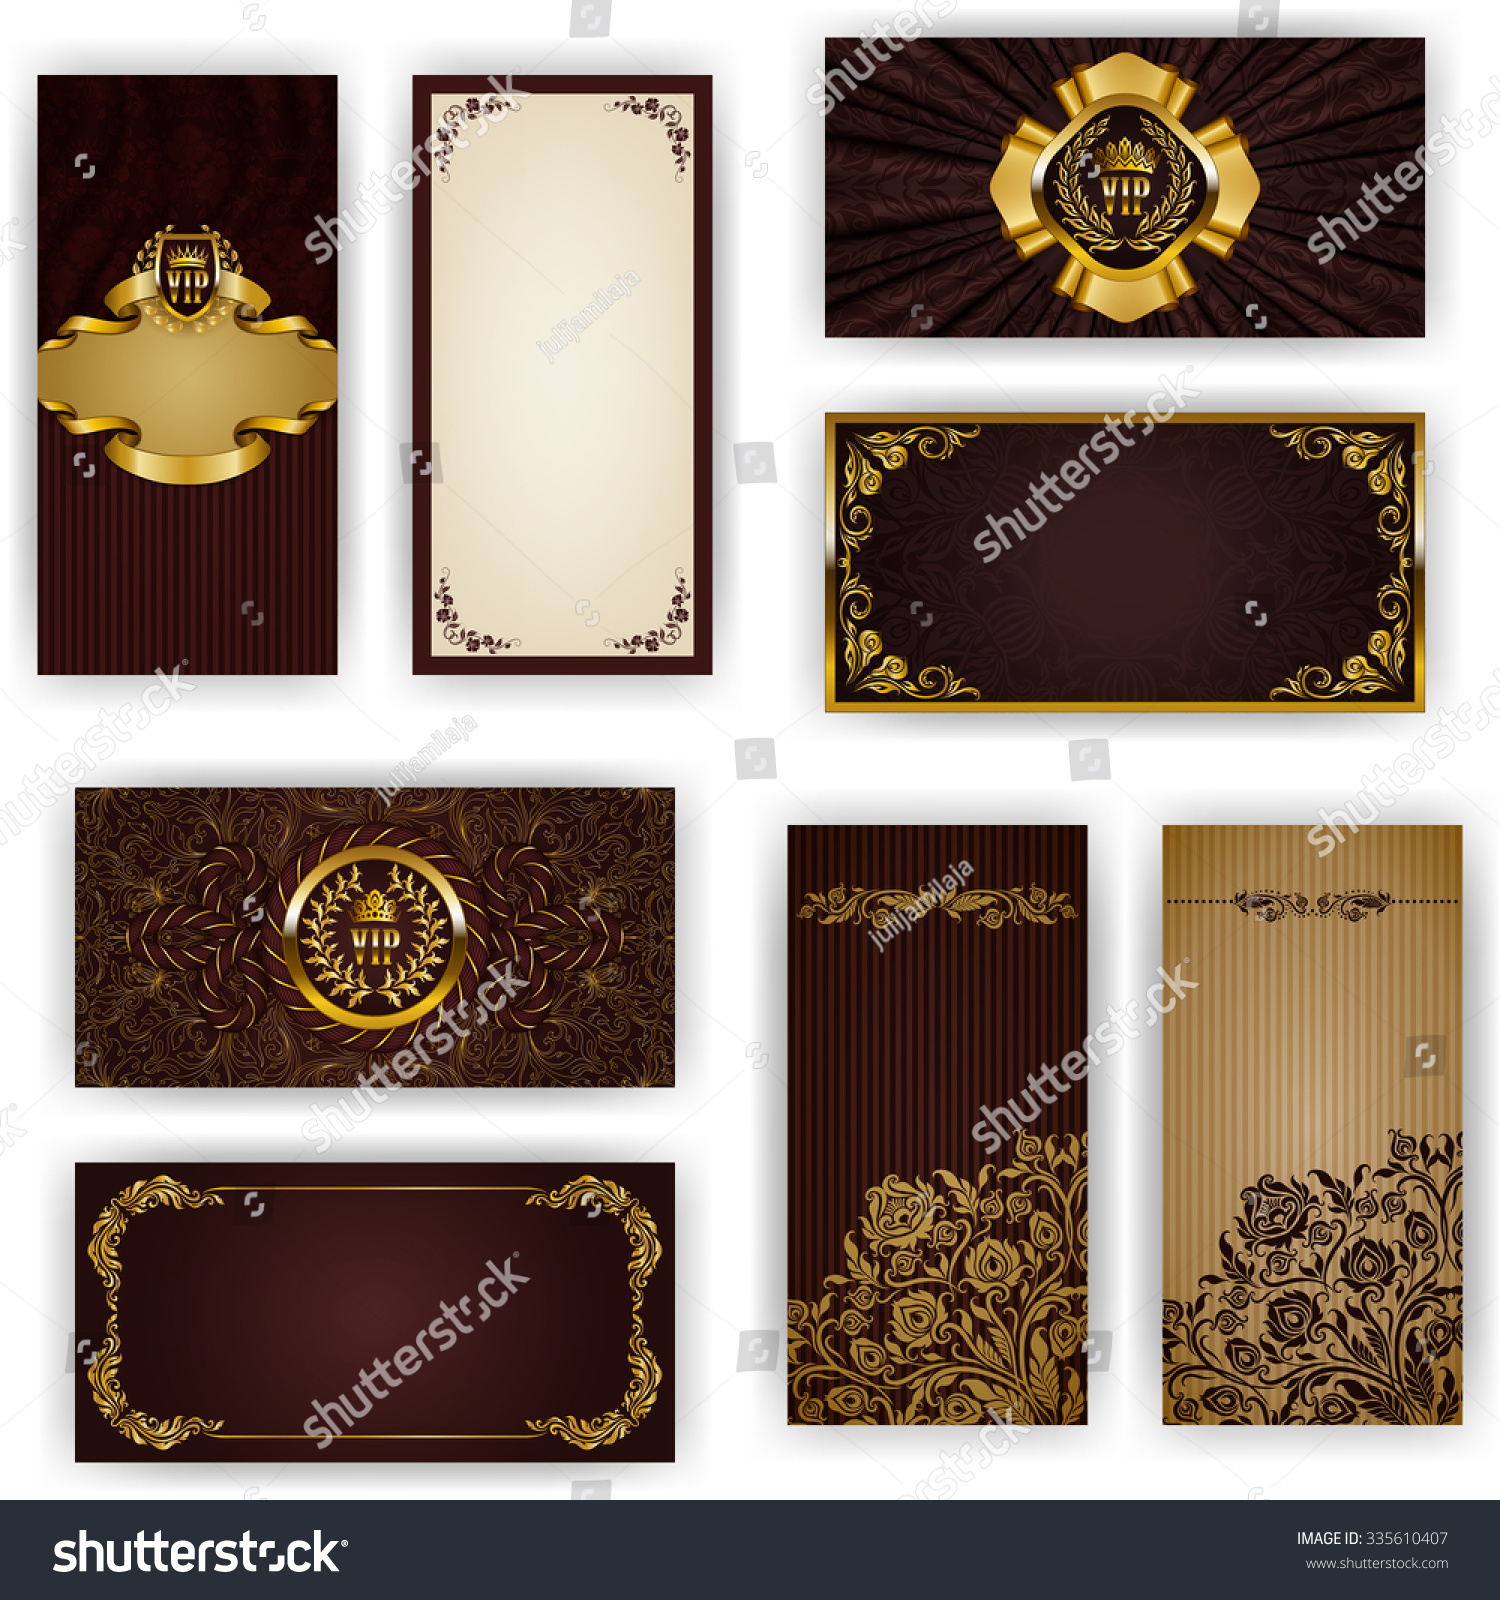 Elegant royal frame with crown vector colourbox - Luxury Ornamental Pattern Template For Design Vector Colourbox Set Elegant Template Vip Luxury Invitation Stock